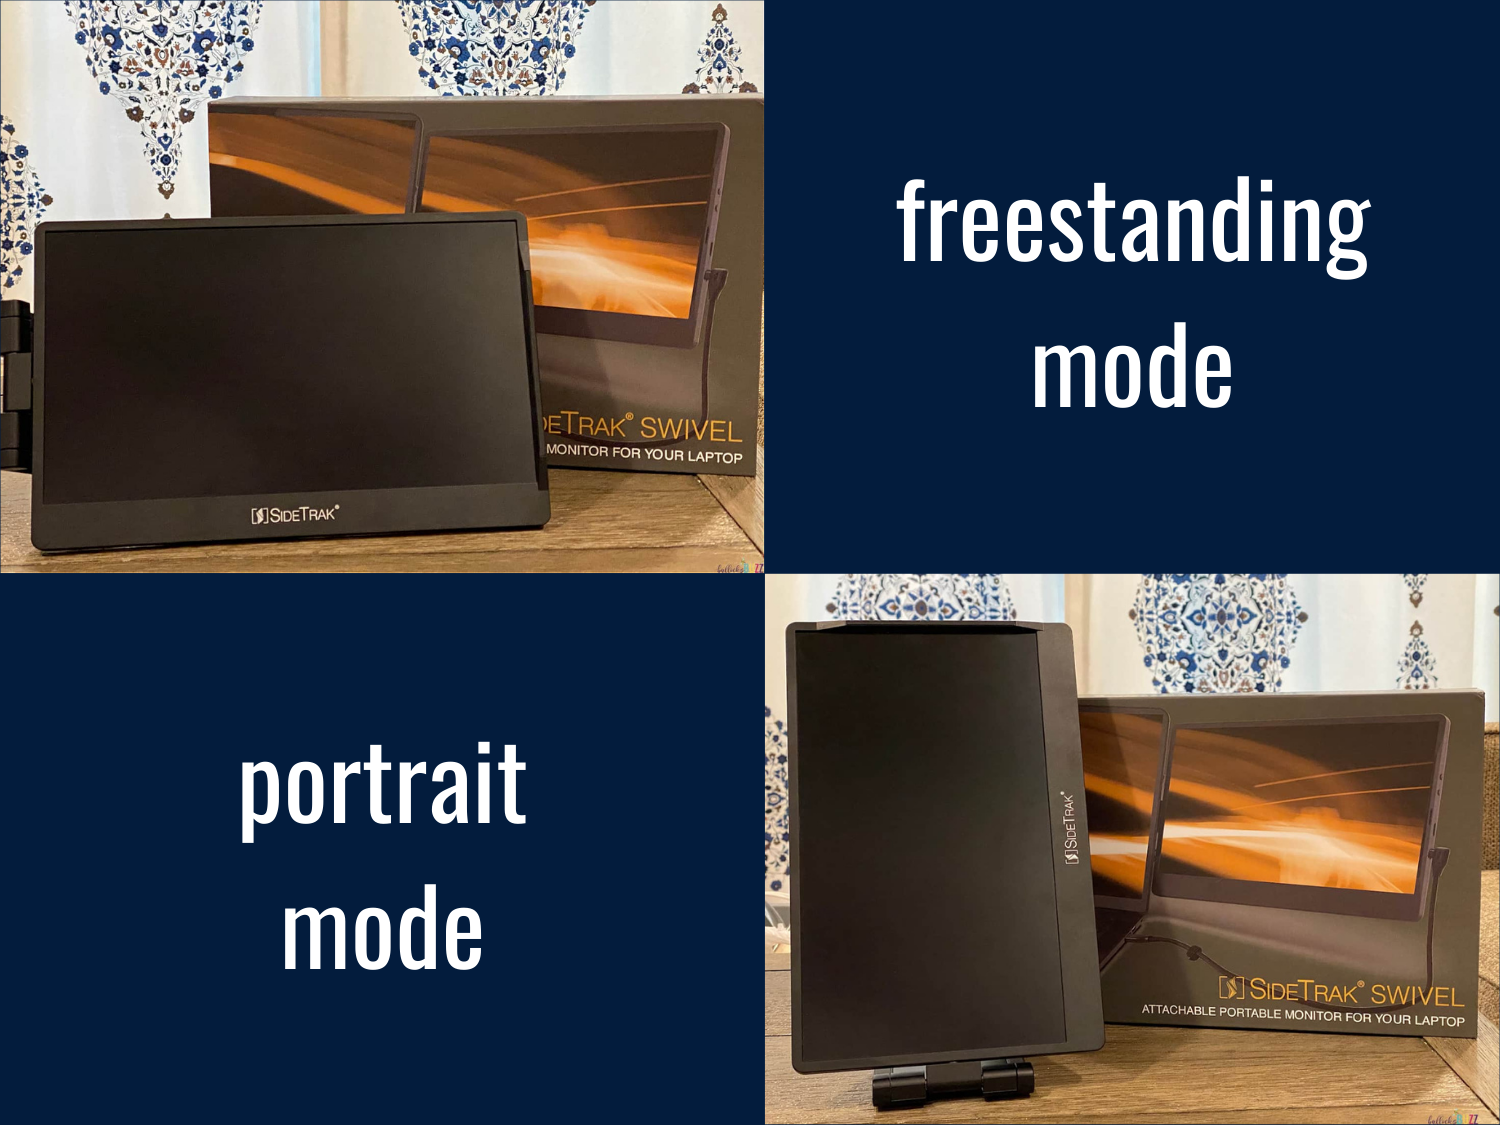 SideTrak Swivel portable laptop monitor in portrait and freestanding modes